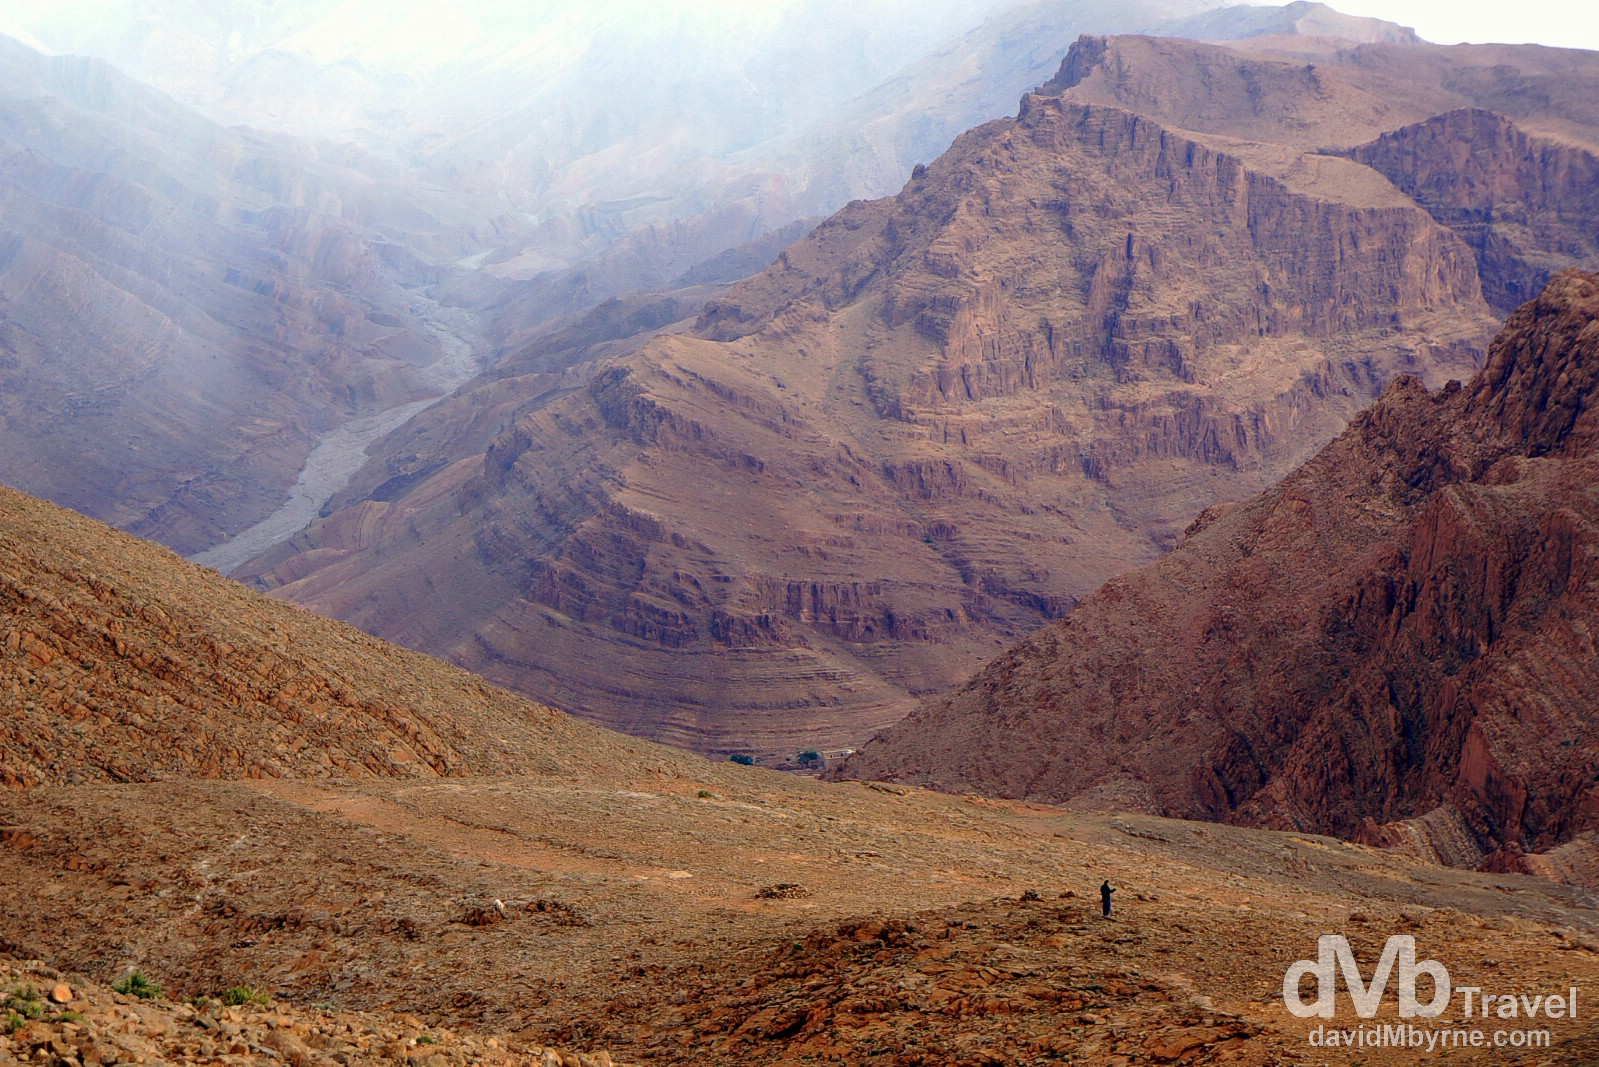 In the barren hills above Todra Gorge, Morocco. May 16th, 2014.